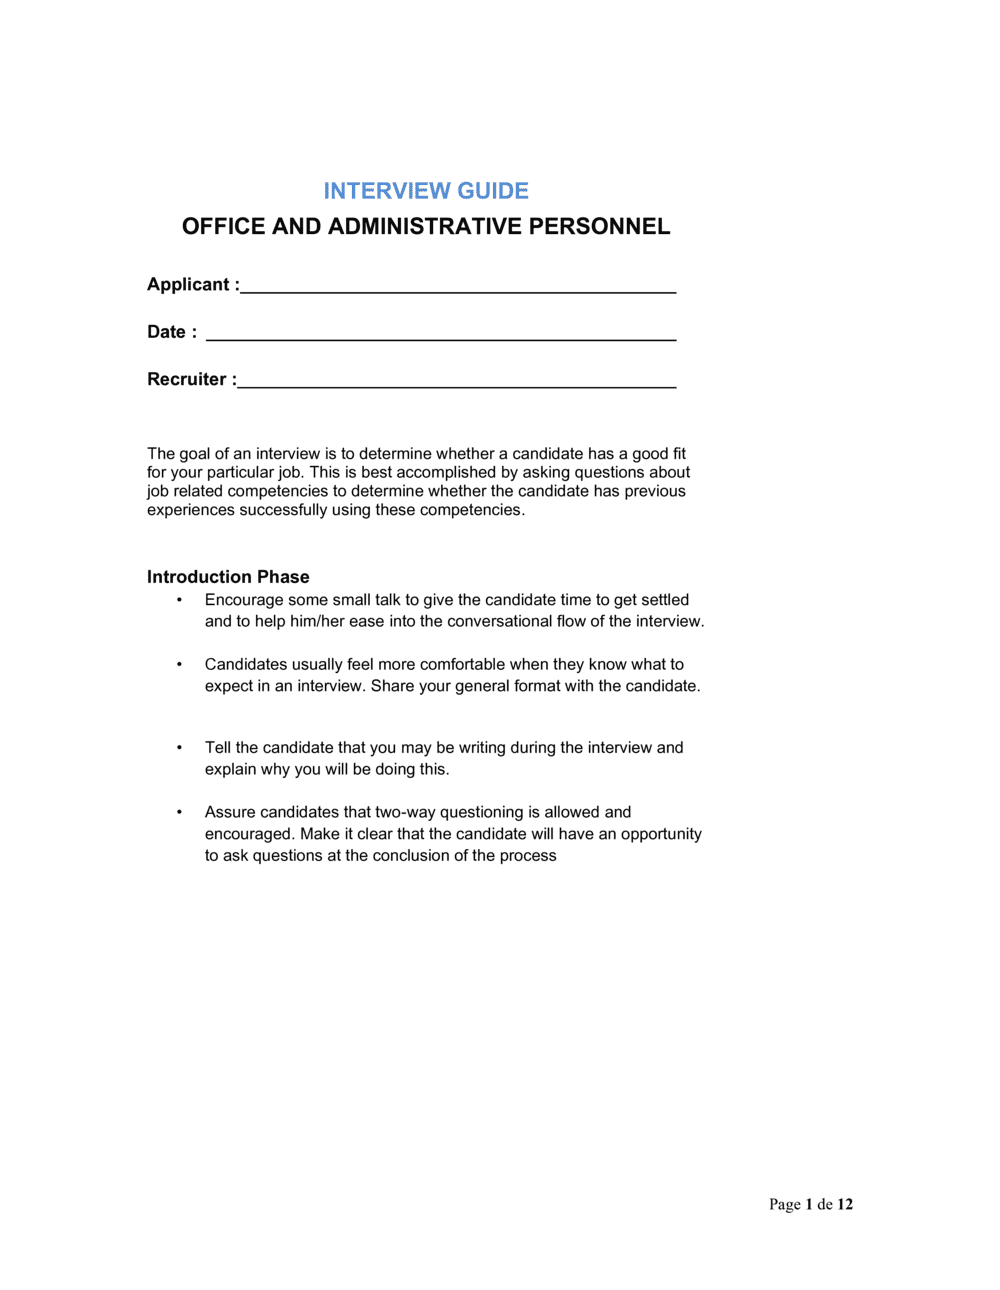 Business-in-a-Box's Interview Guide Office and Administrative Personnel Template